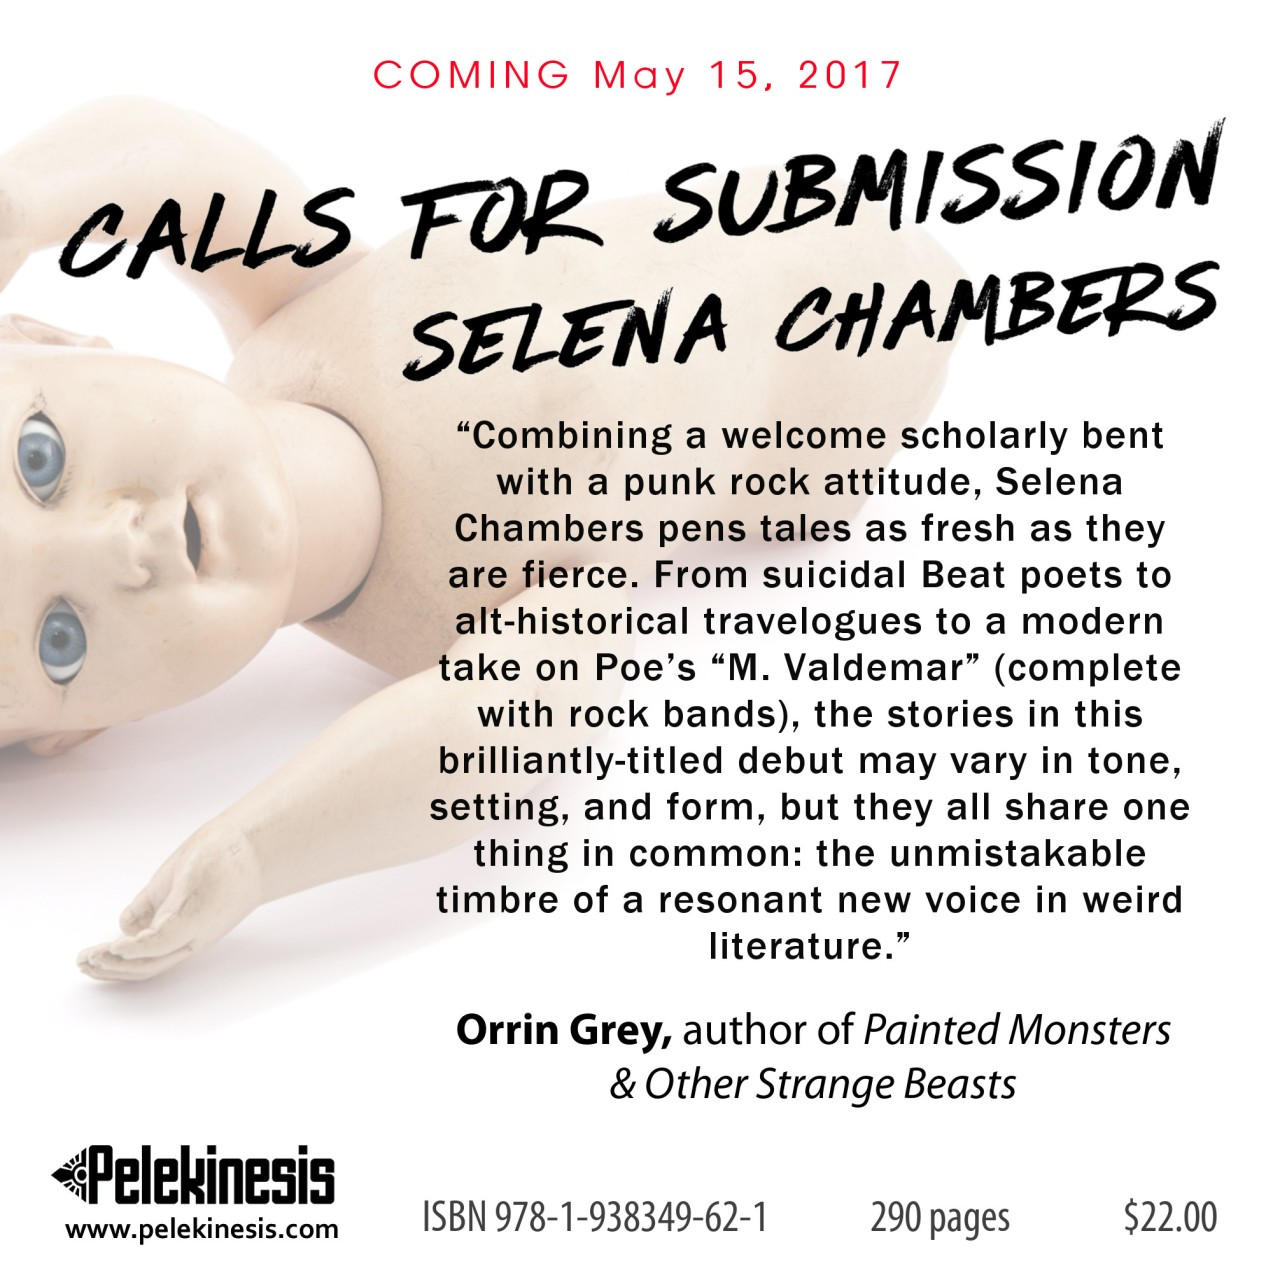 selena_chambers-calls_for_submission-orrin_grey